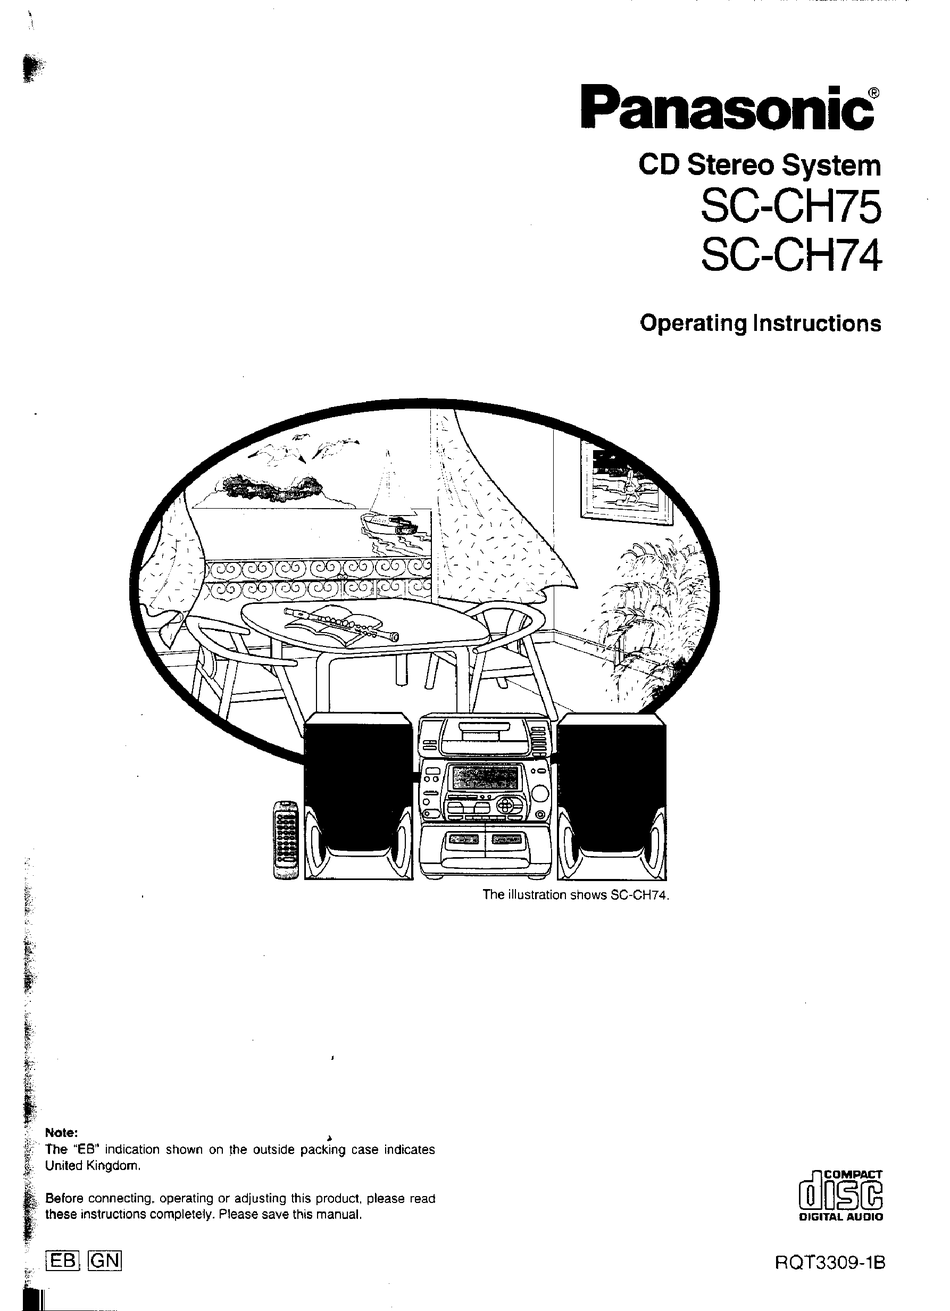 PANASONIC SC-CH74 OPERATING INSTRUCTIONS MANUAL Pdf